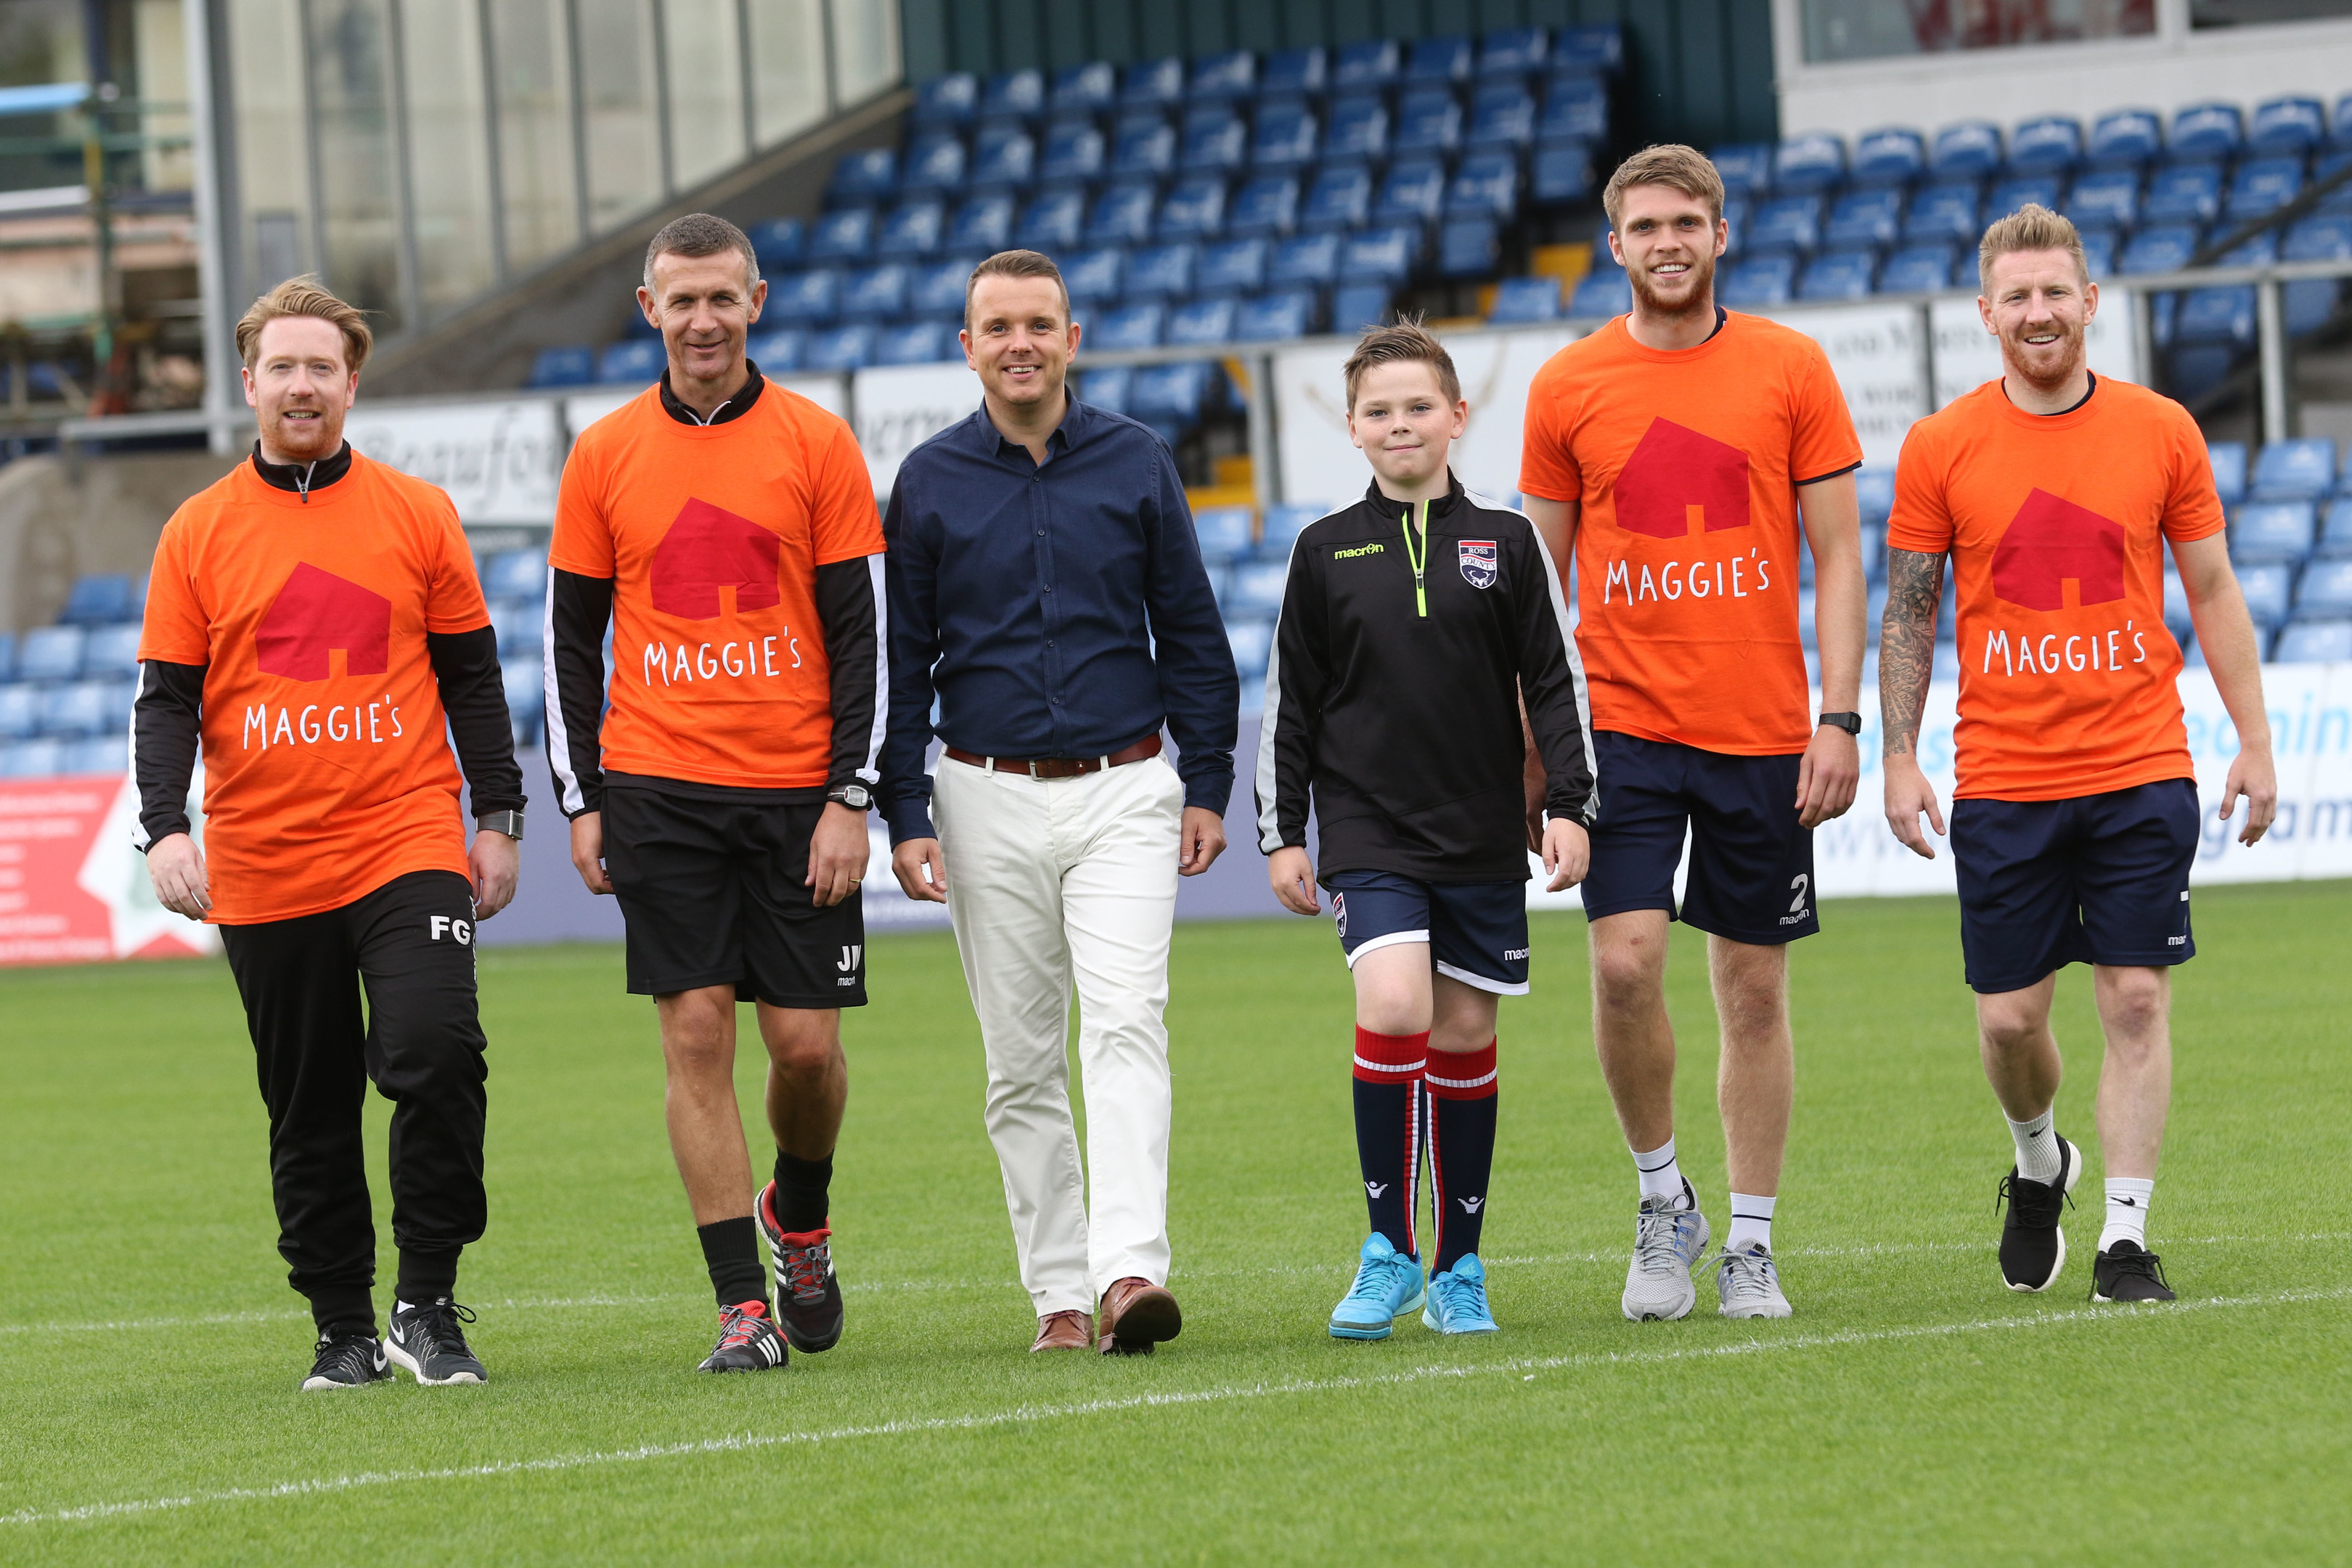 Left-to-right: Ross County video analyst Fraser Gorman, manager Jim McIntyre, Maggie's fundraising manager Andrew Benjamin, Alasdair Urquhart, Ross County defender Marcus Fraser and winger Michael Gardyne.